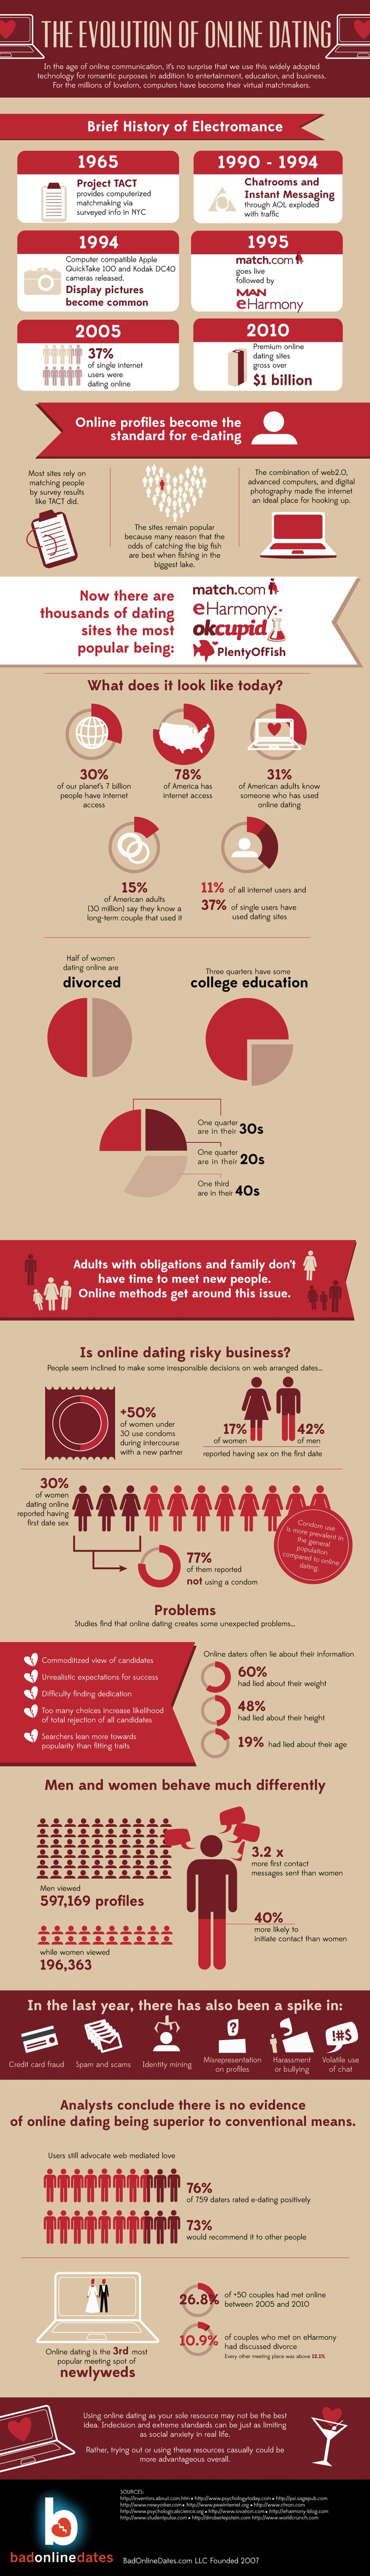 Online Romance and Its Development